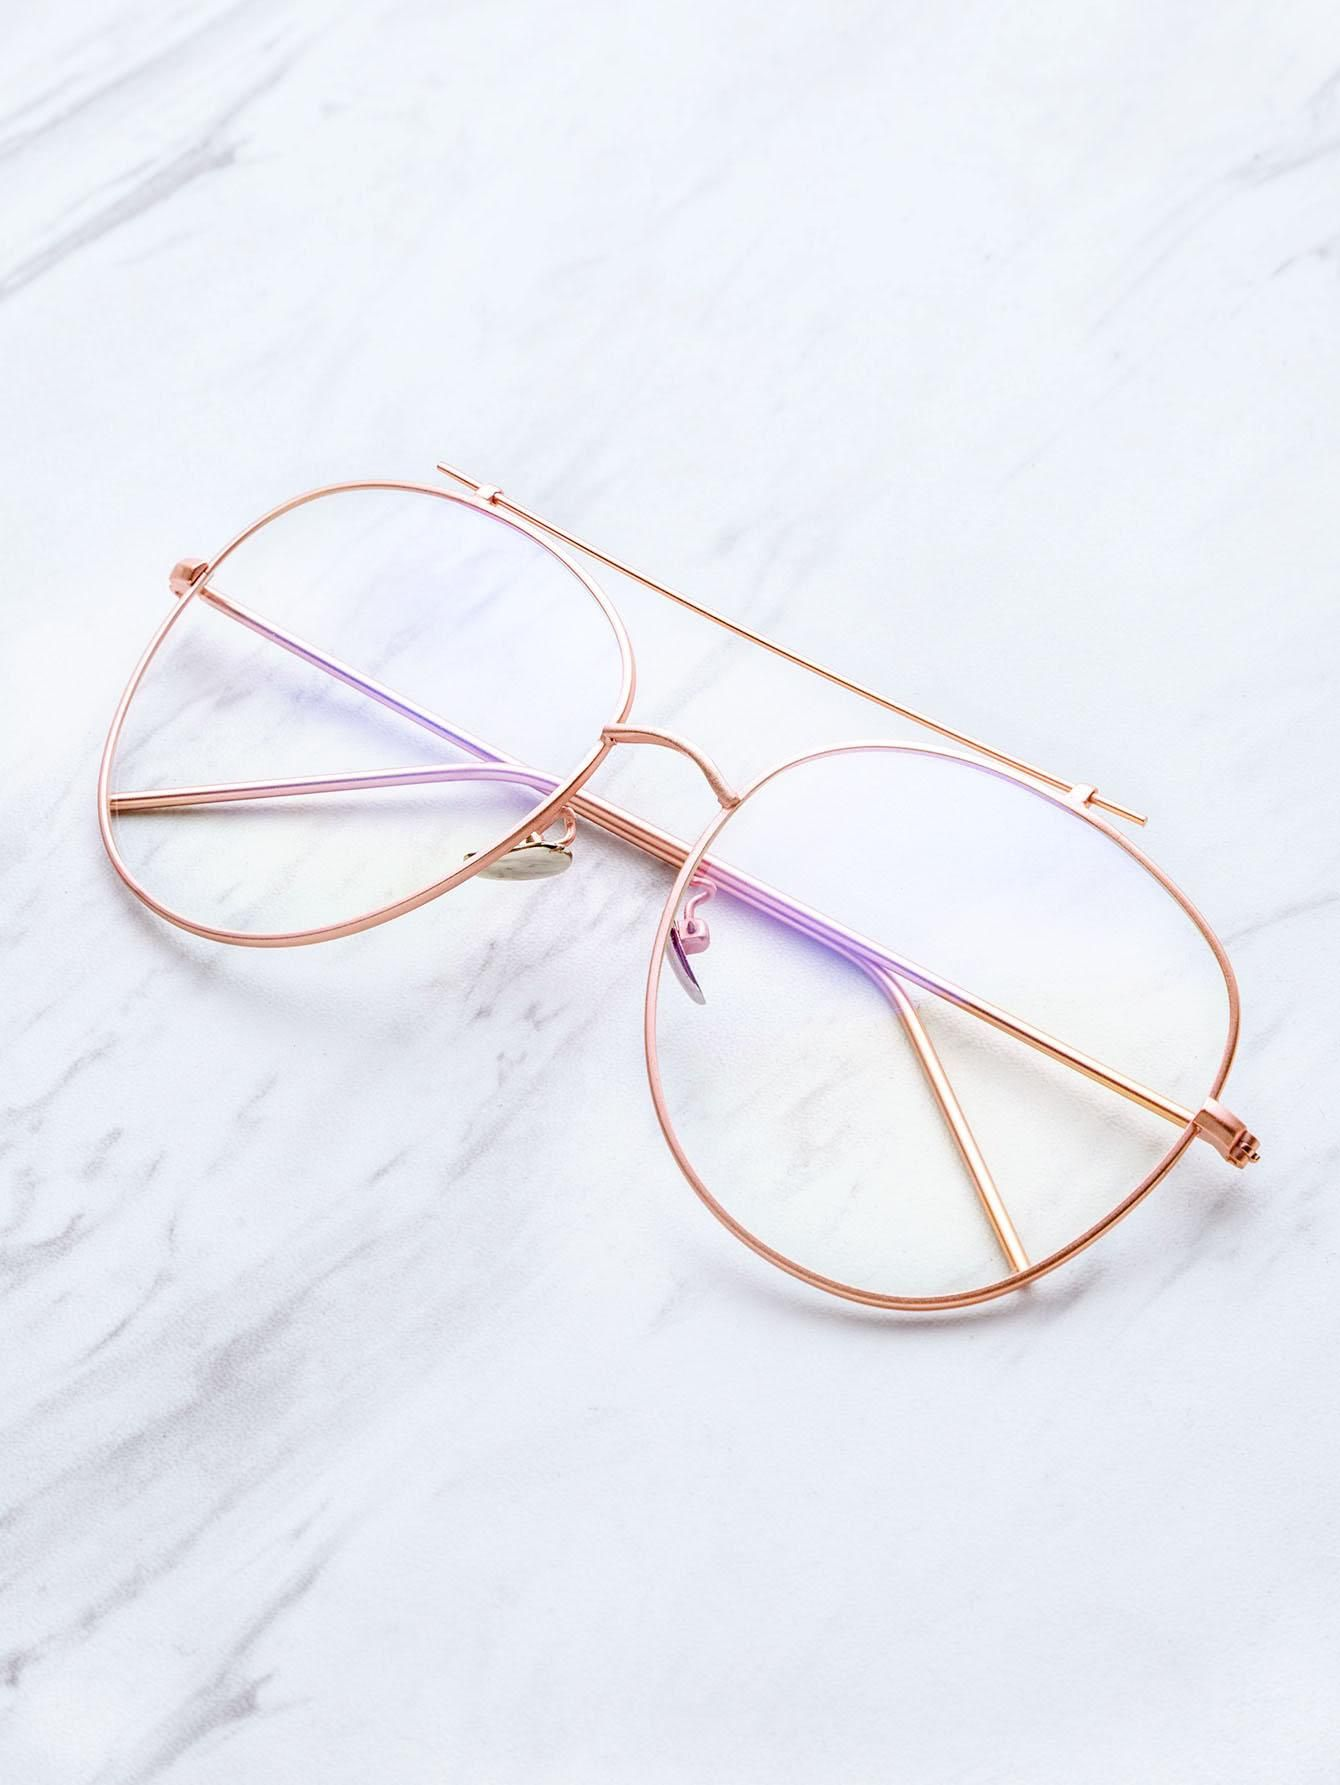 b2c692c3f SheIn - SheIn Rose Gold Frame Clear Lens Double Bridge Glasses -  AdoreWe.com Armação